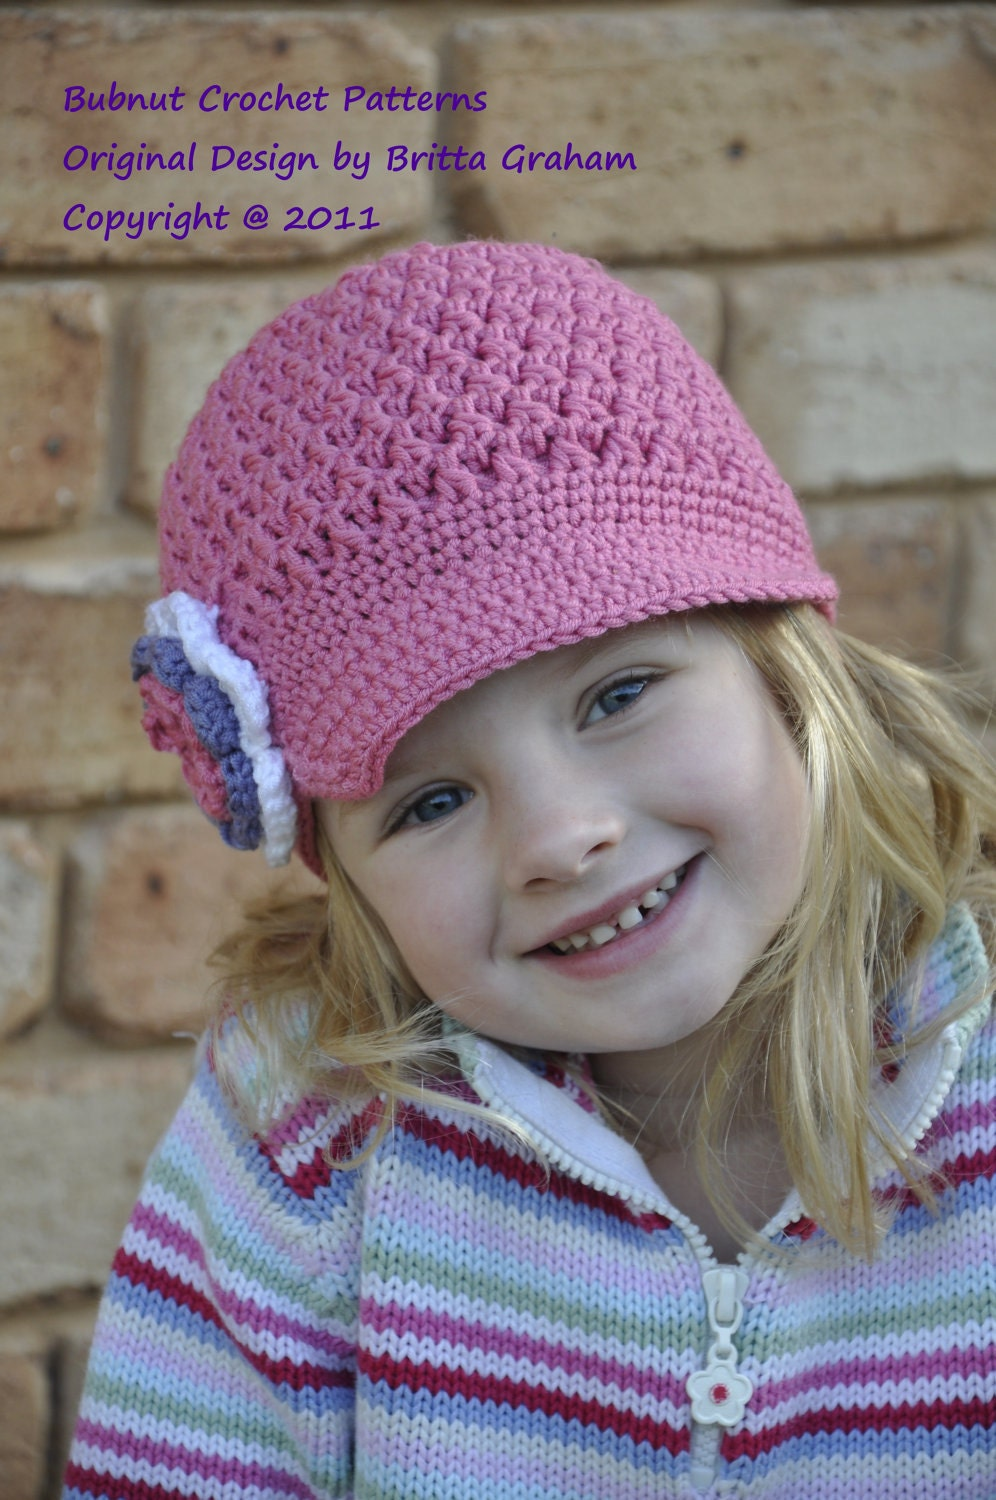 Free Crochet Pattern For Infant Newsboy Hat : Crochet Hat Pattern Textured Newsboy Pattern No.407 TEN